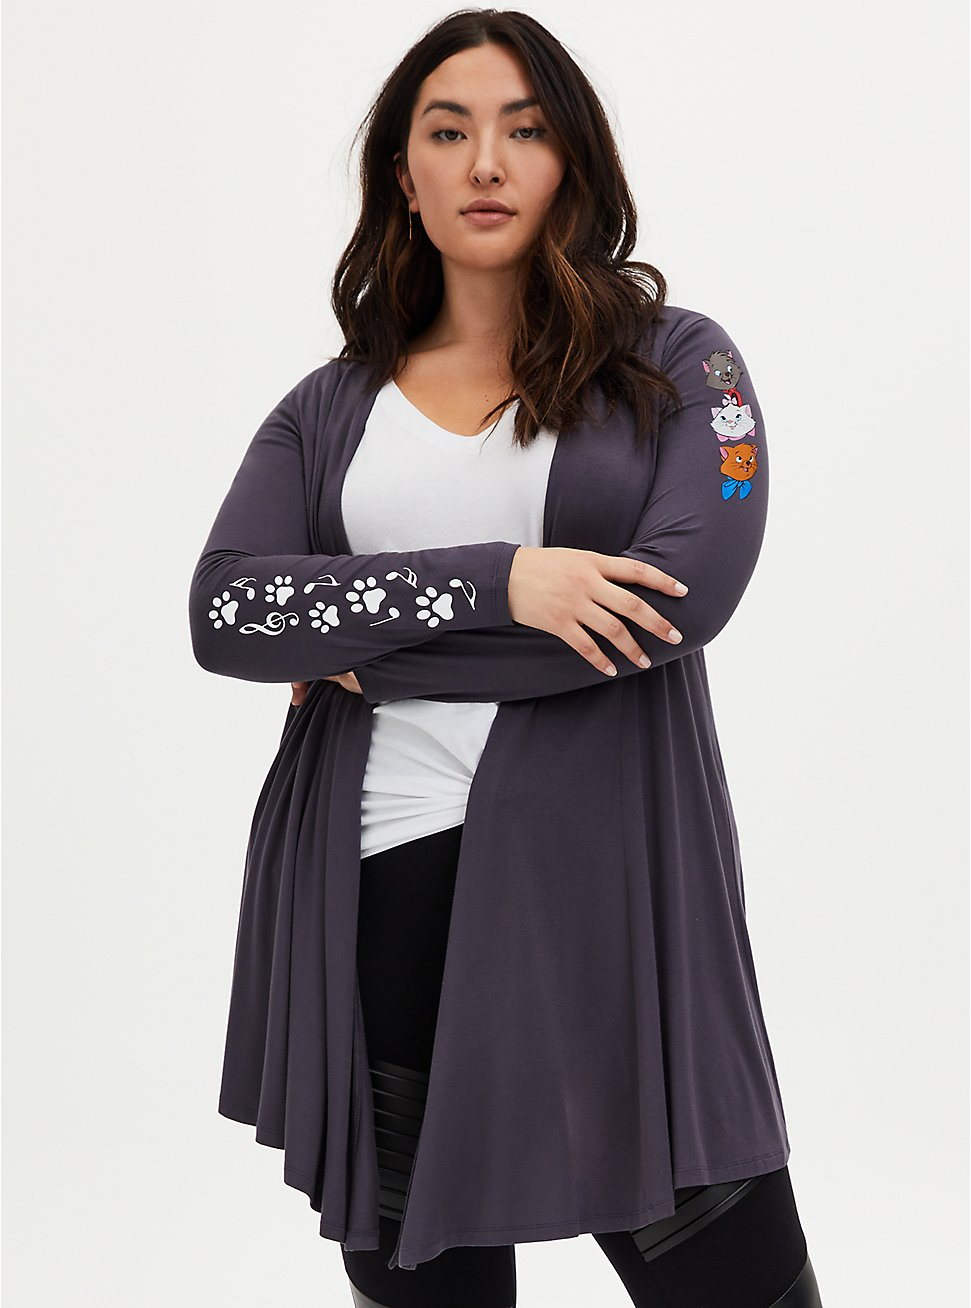 Plus Size Disney The Aristocats Characters Super Soft Fit & Flare Cardigan, GREY, hi-res